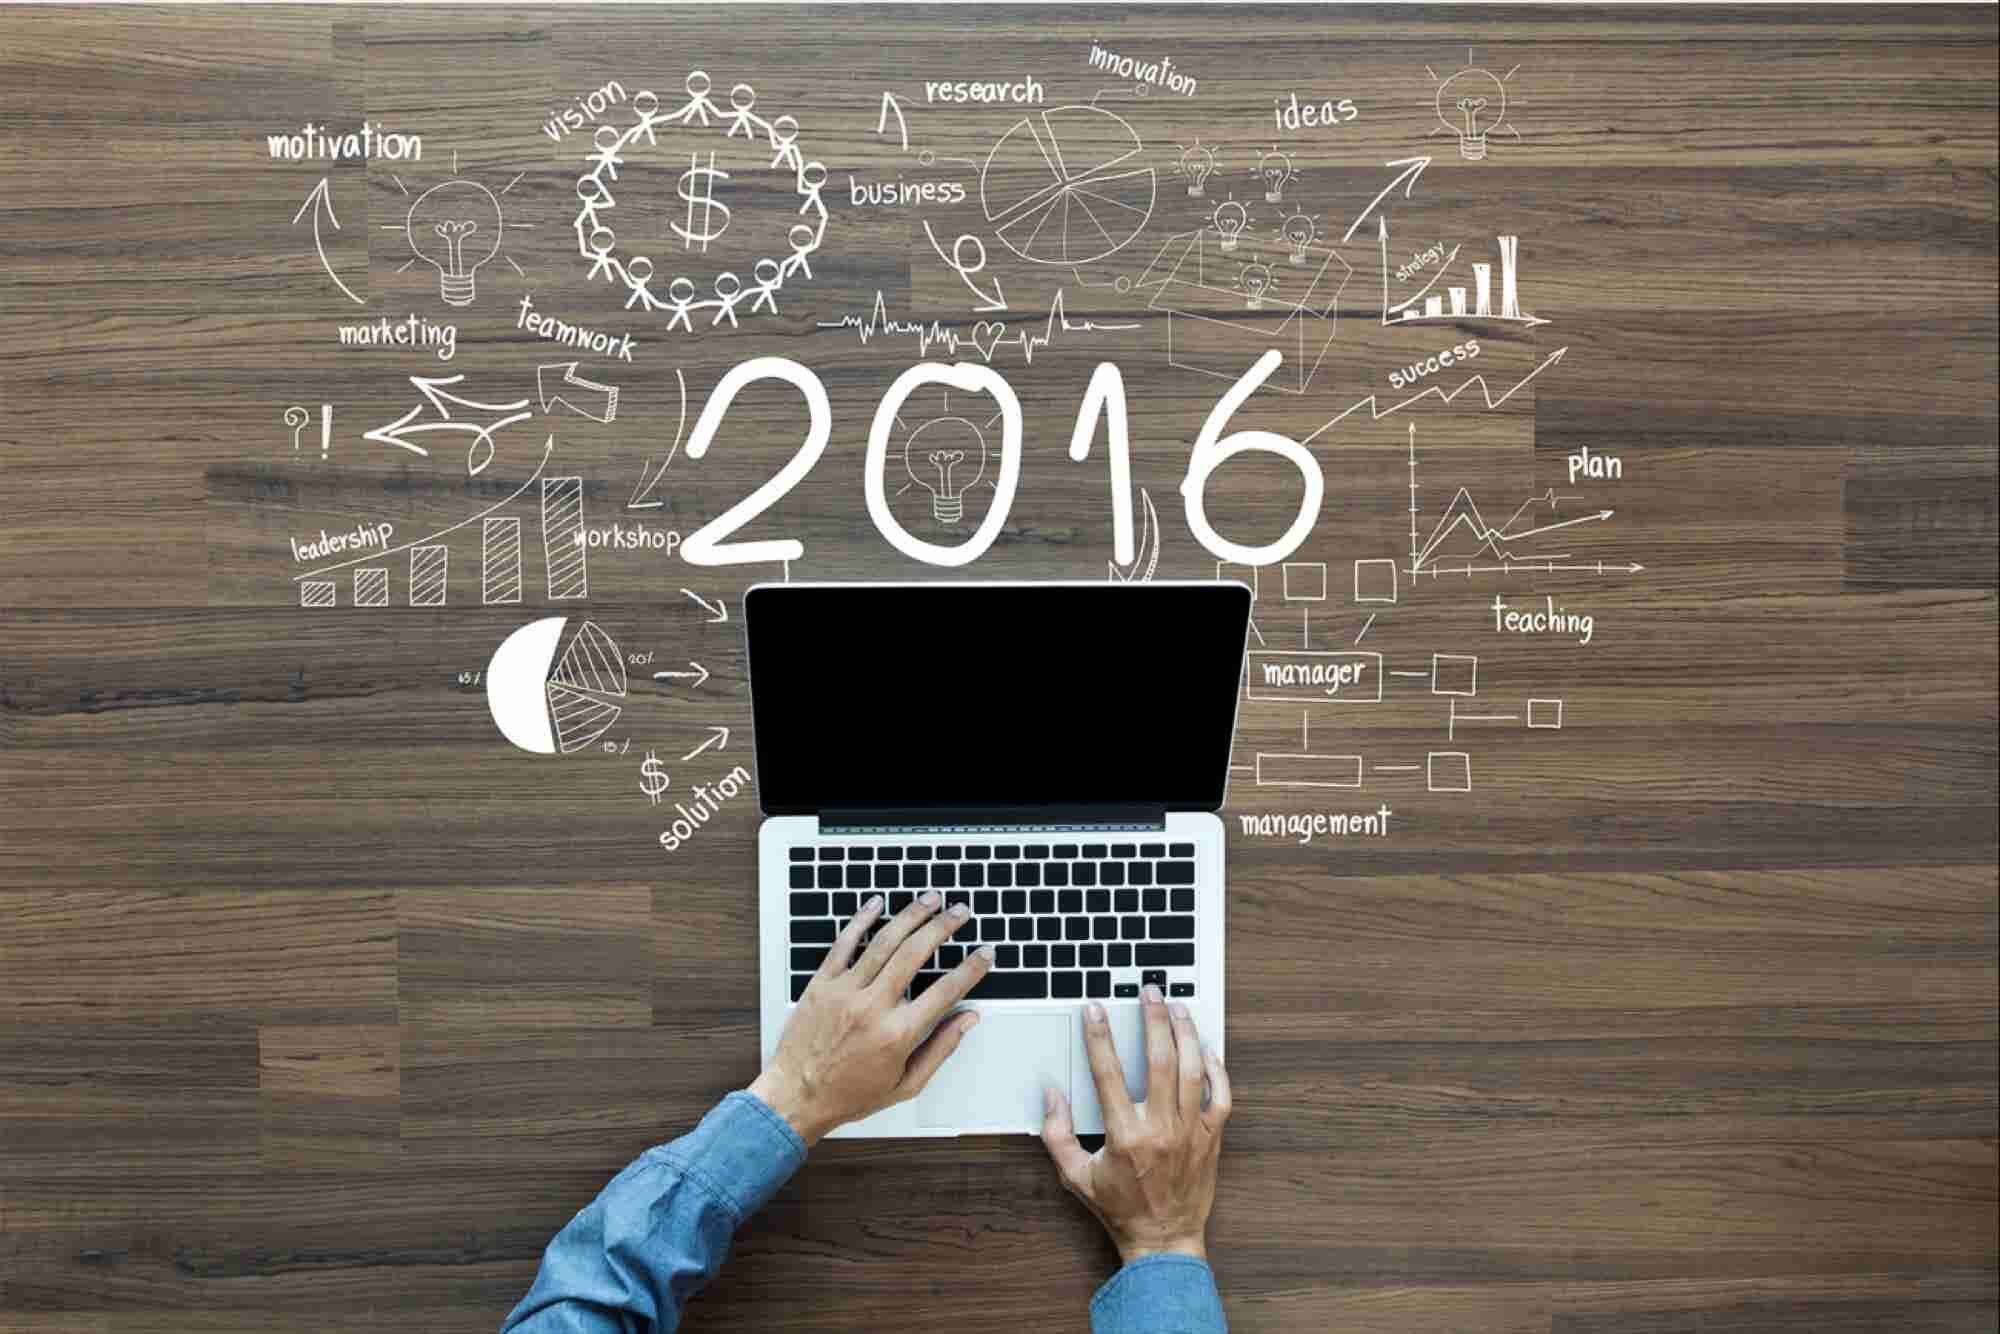 5 Marketing-Related Challenges to Overcome in 2016